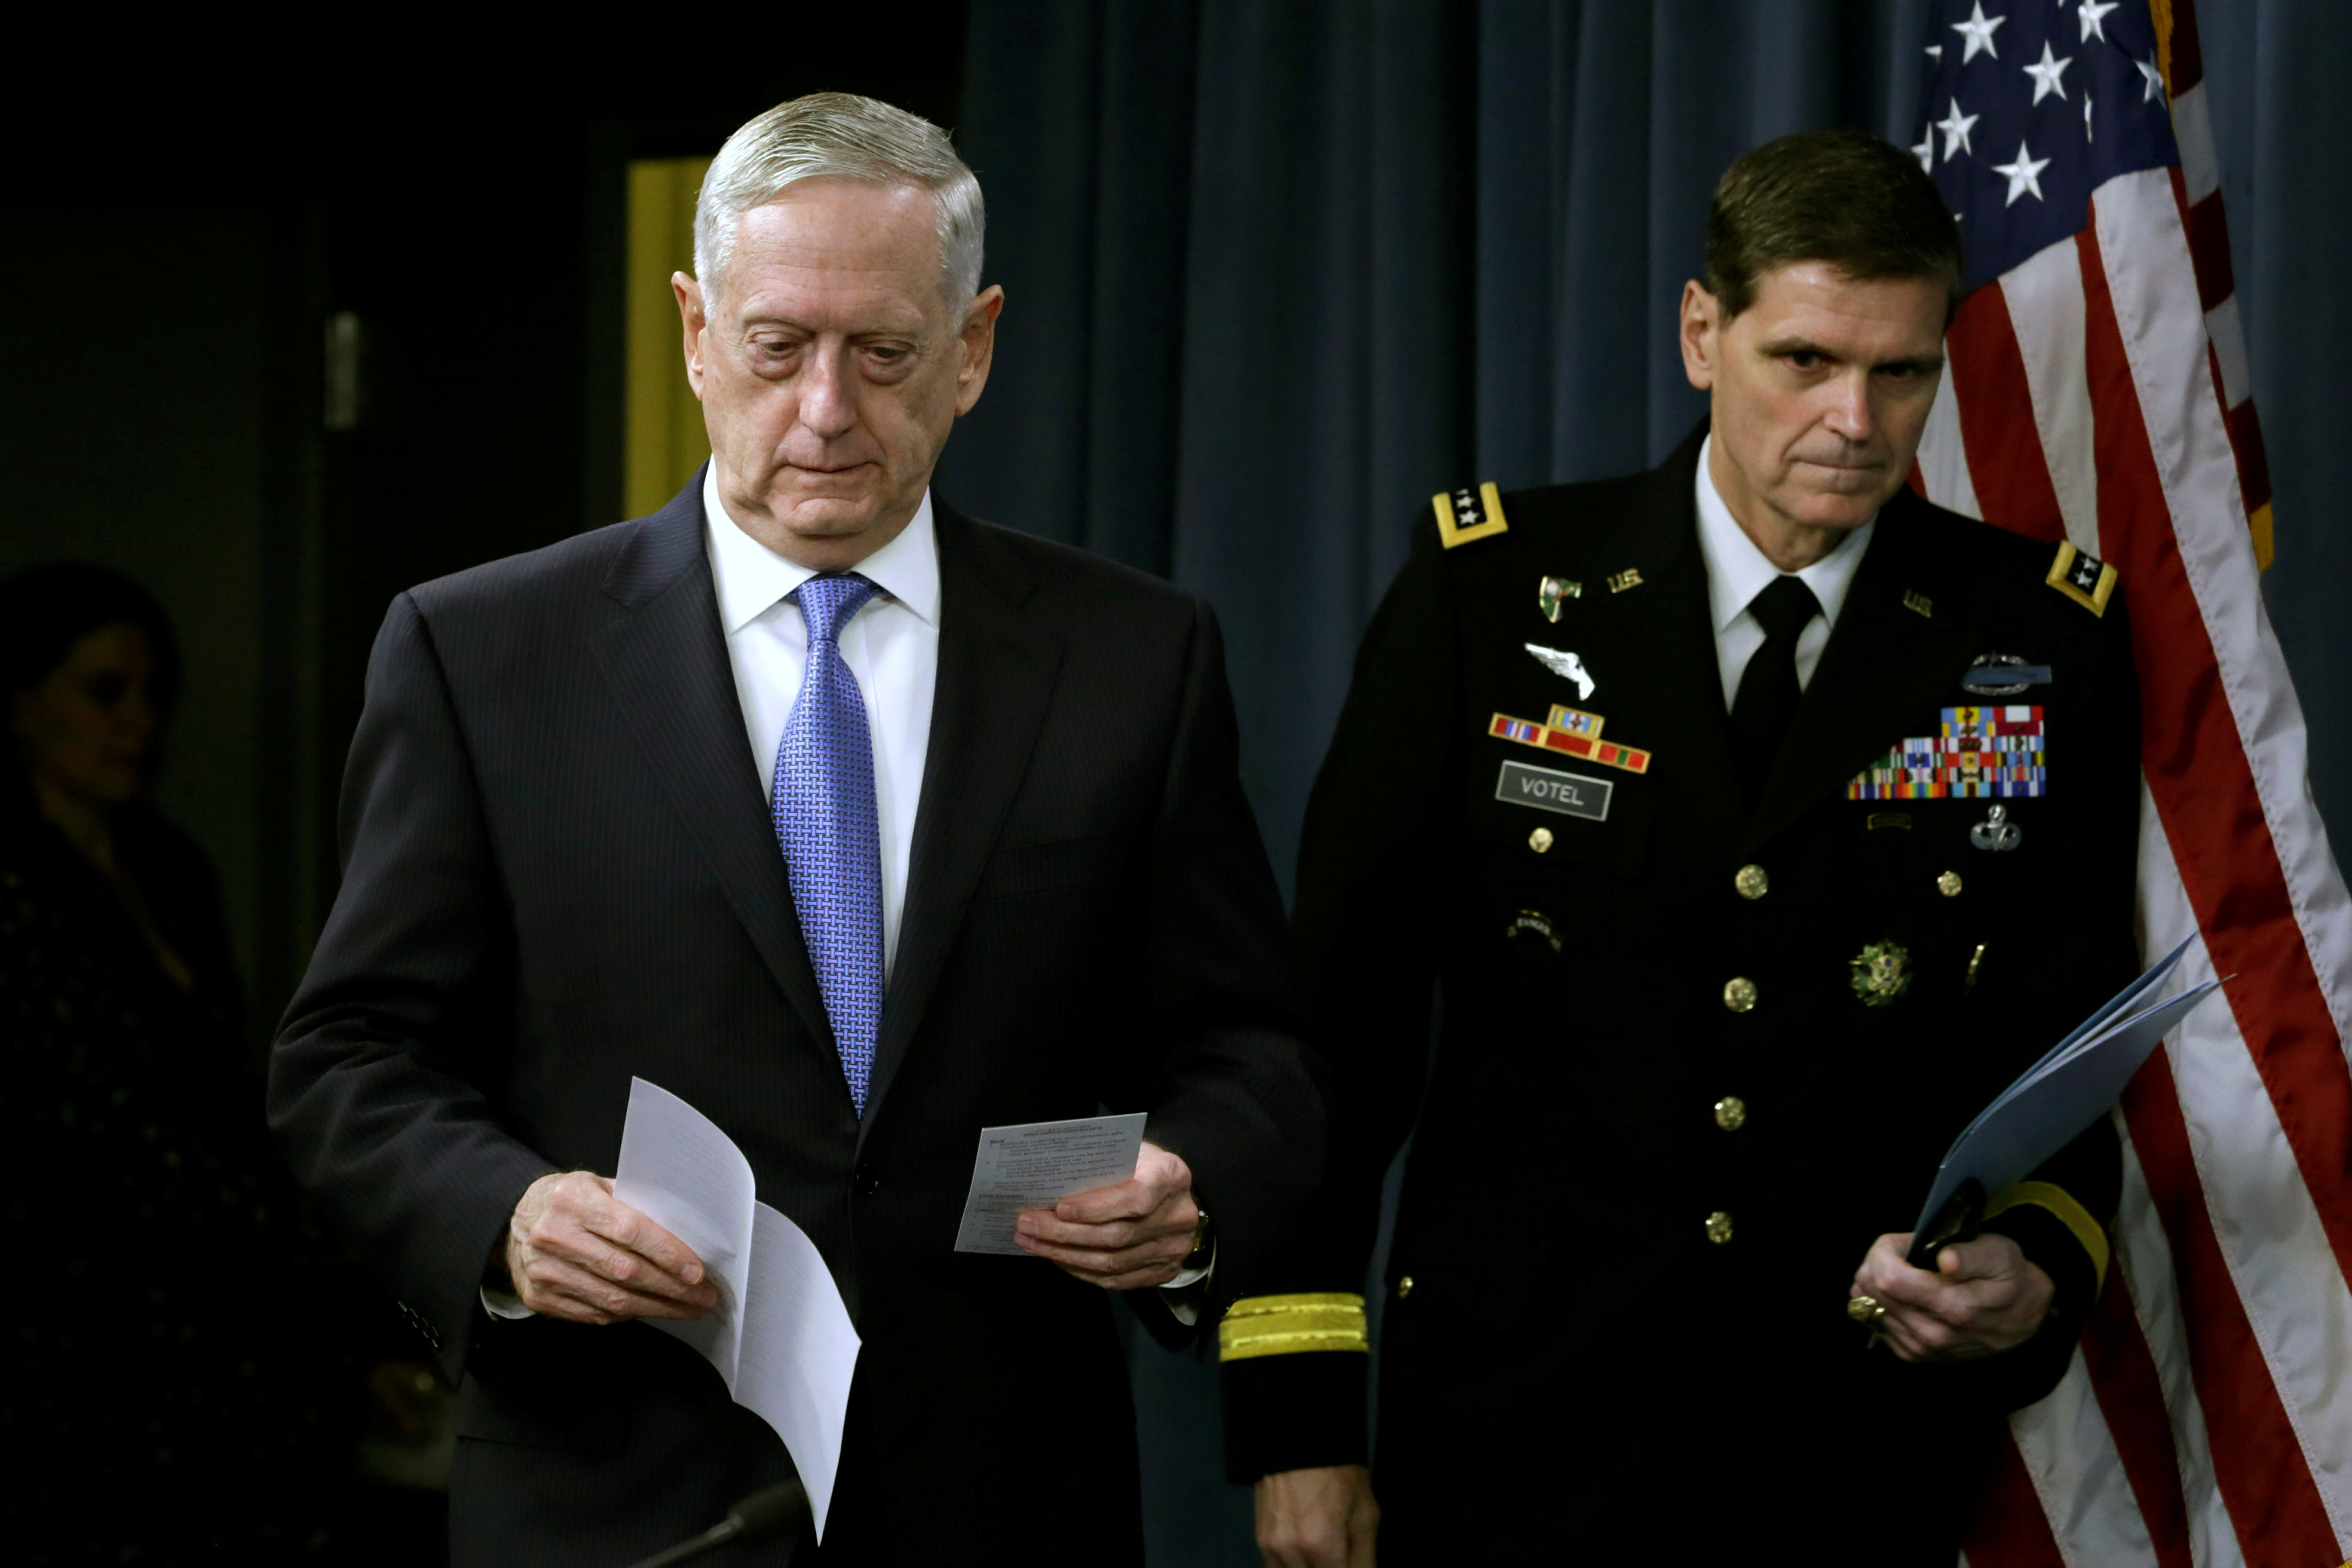 U.S. Defense Secretary James Mattis (L) and Army Gen. Joseph Votel, commander of U.S. Central Command, arrive to brief the media at the Pentagon in Washington on April 11, 2017. (REUTERS/Yuri Gripas)